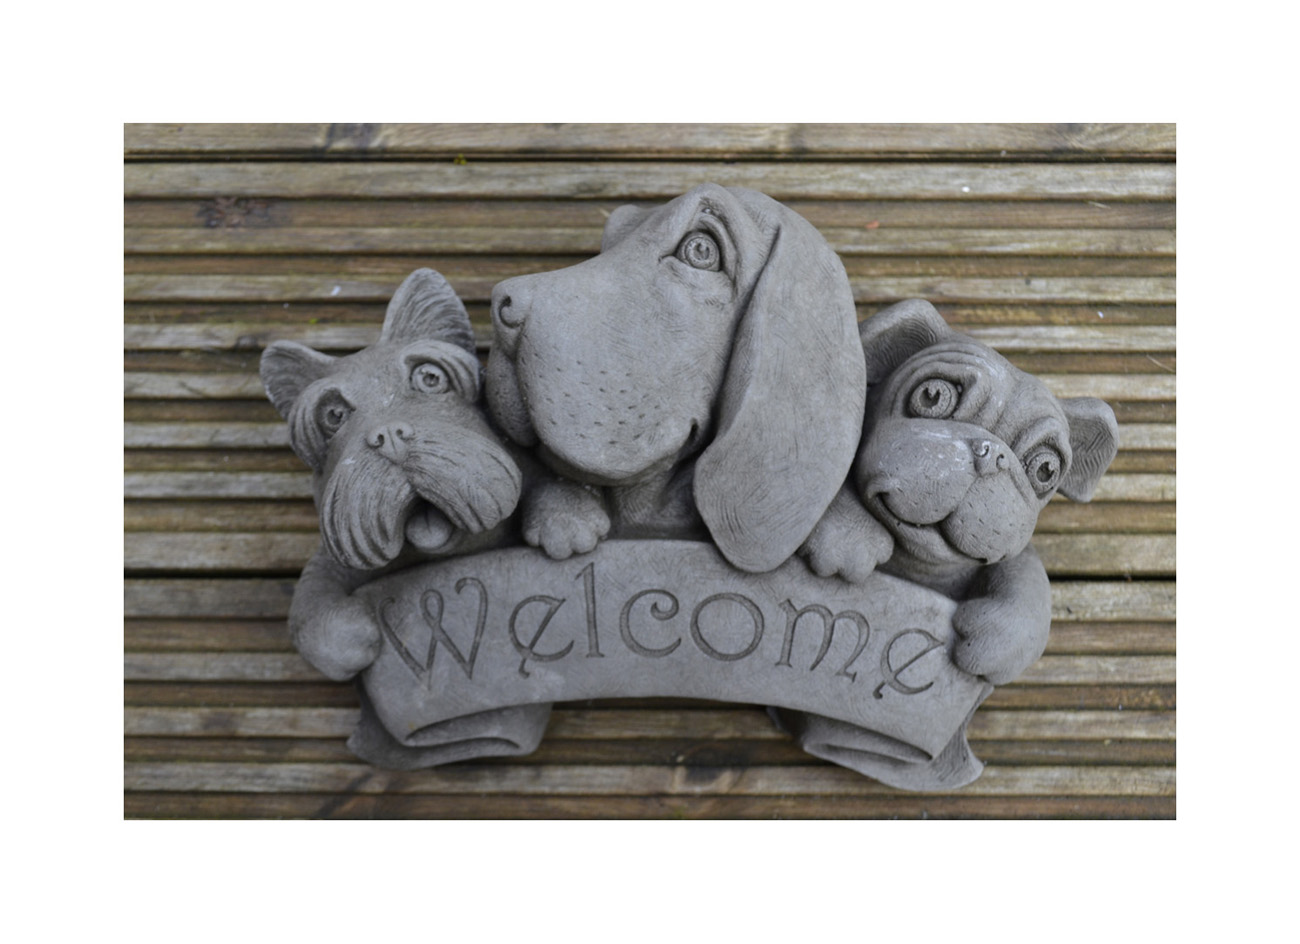 Welcome Dog Wall Plaque25 1